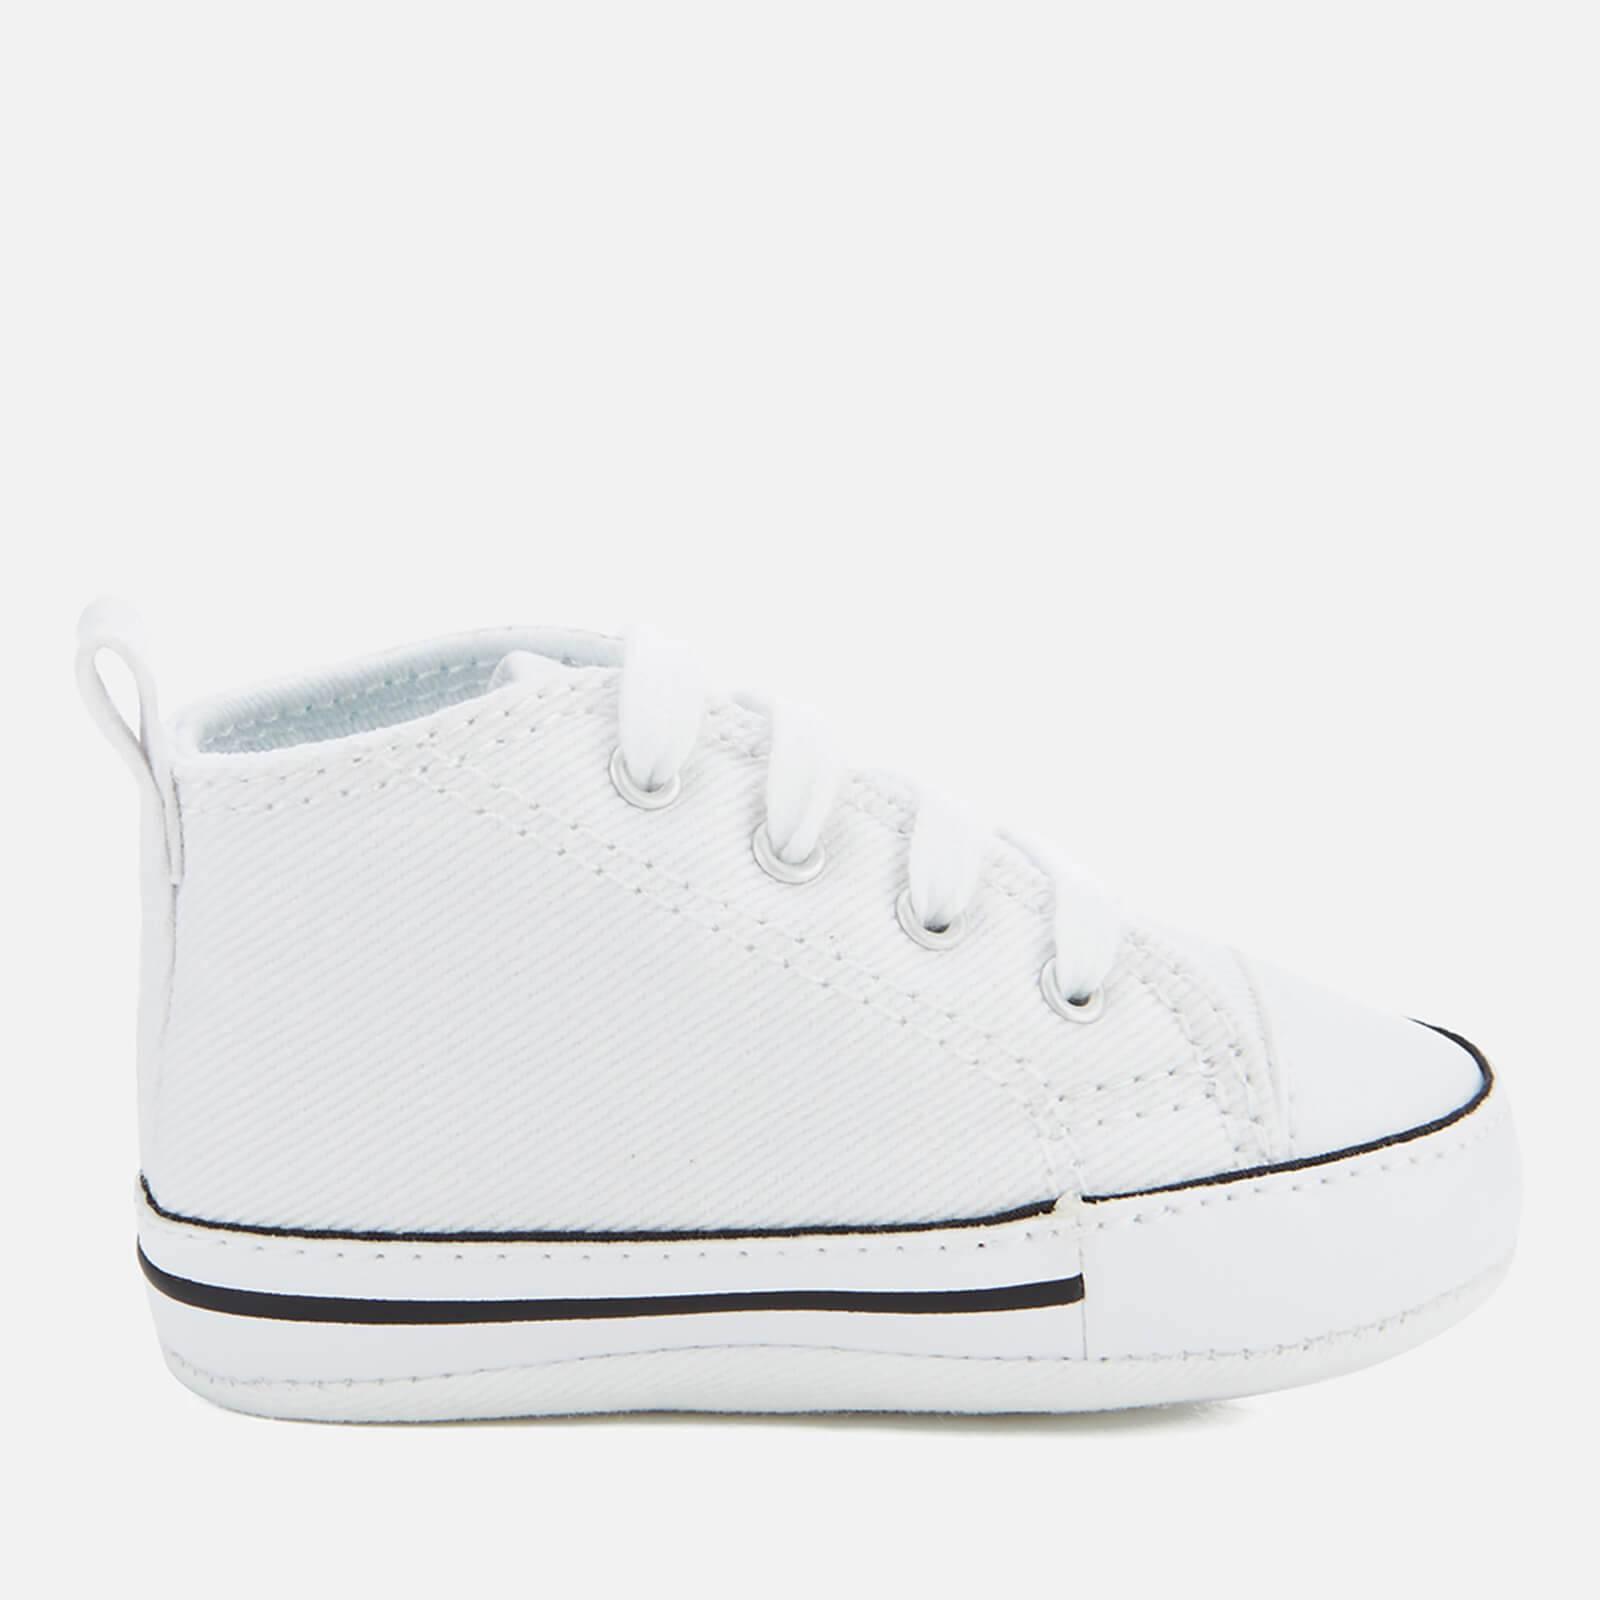 Converse Babies Chuck Taylor First Star Hi-Top Trainers - White - UK 4 Baby